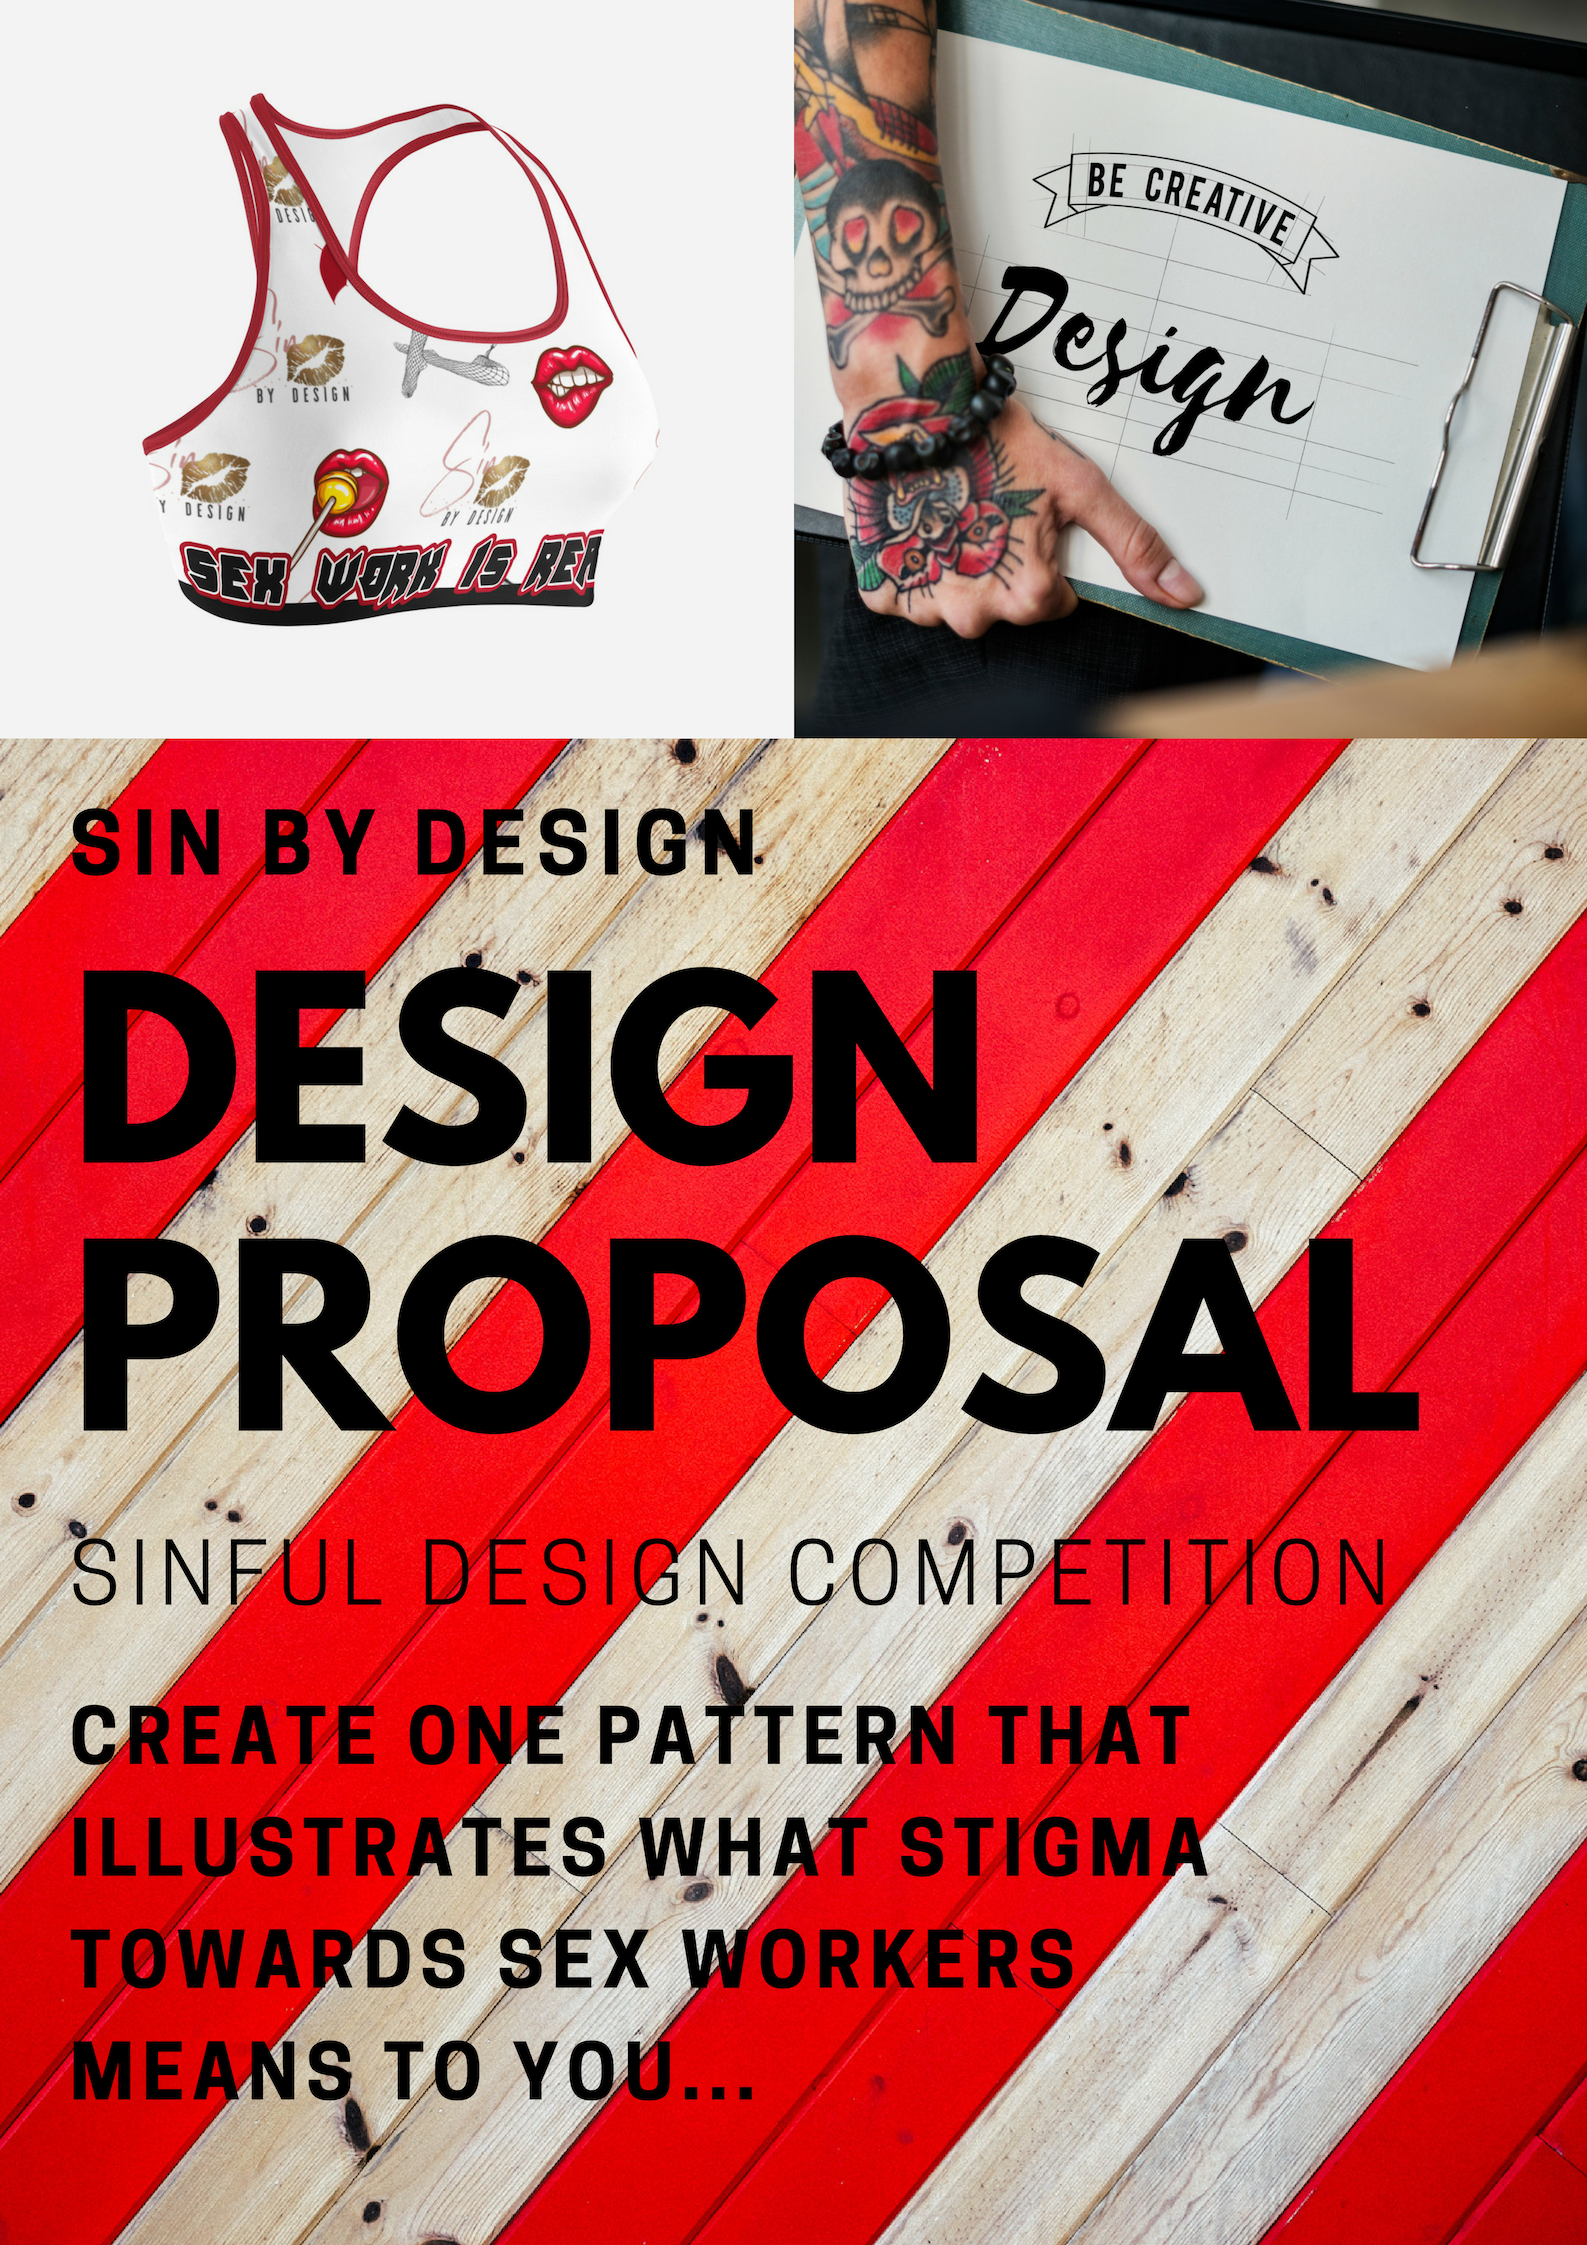 sin by design  sinful design competition  raise awareness